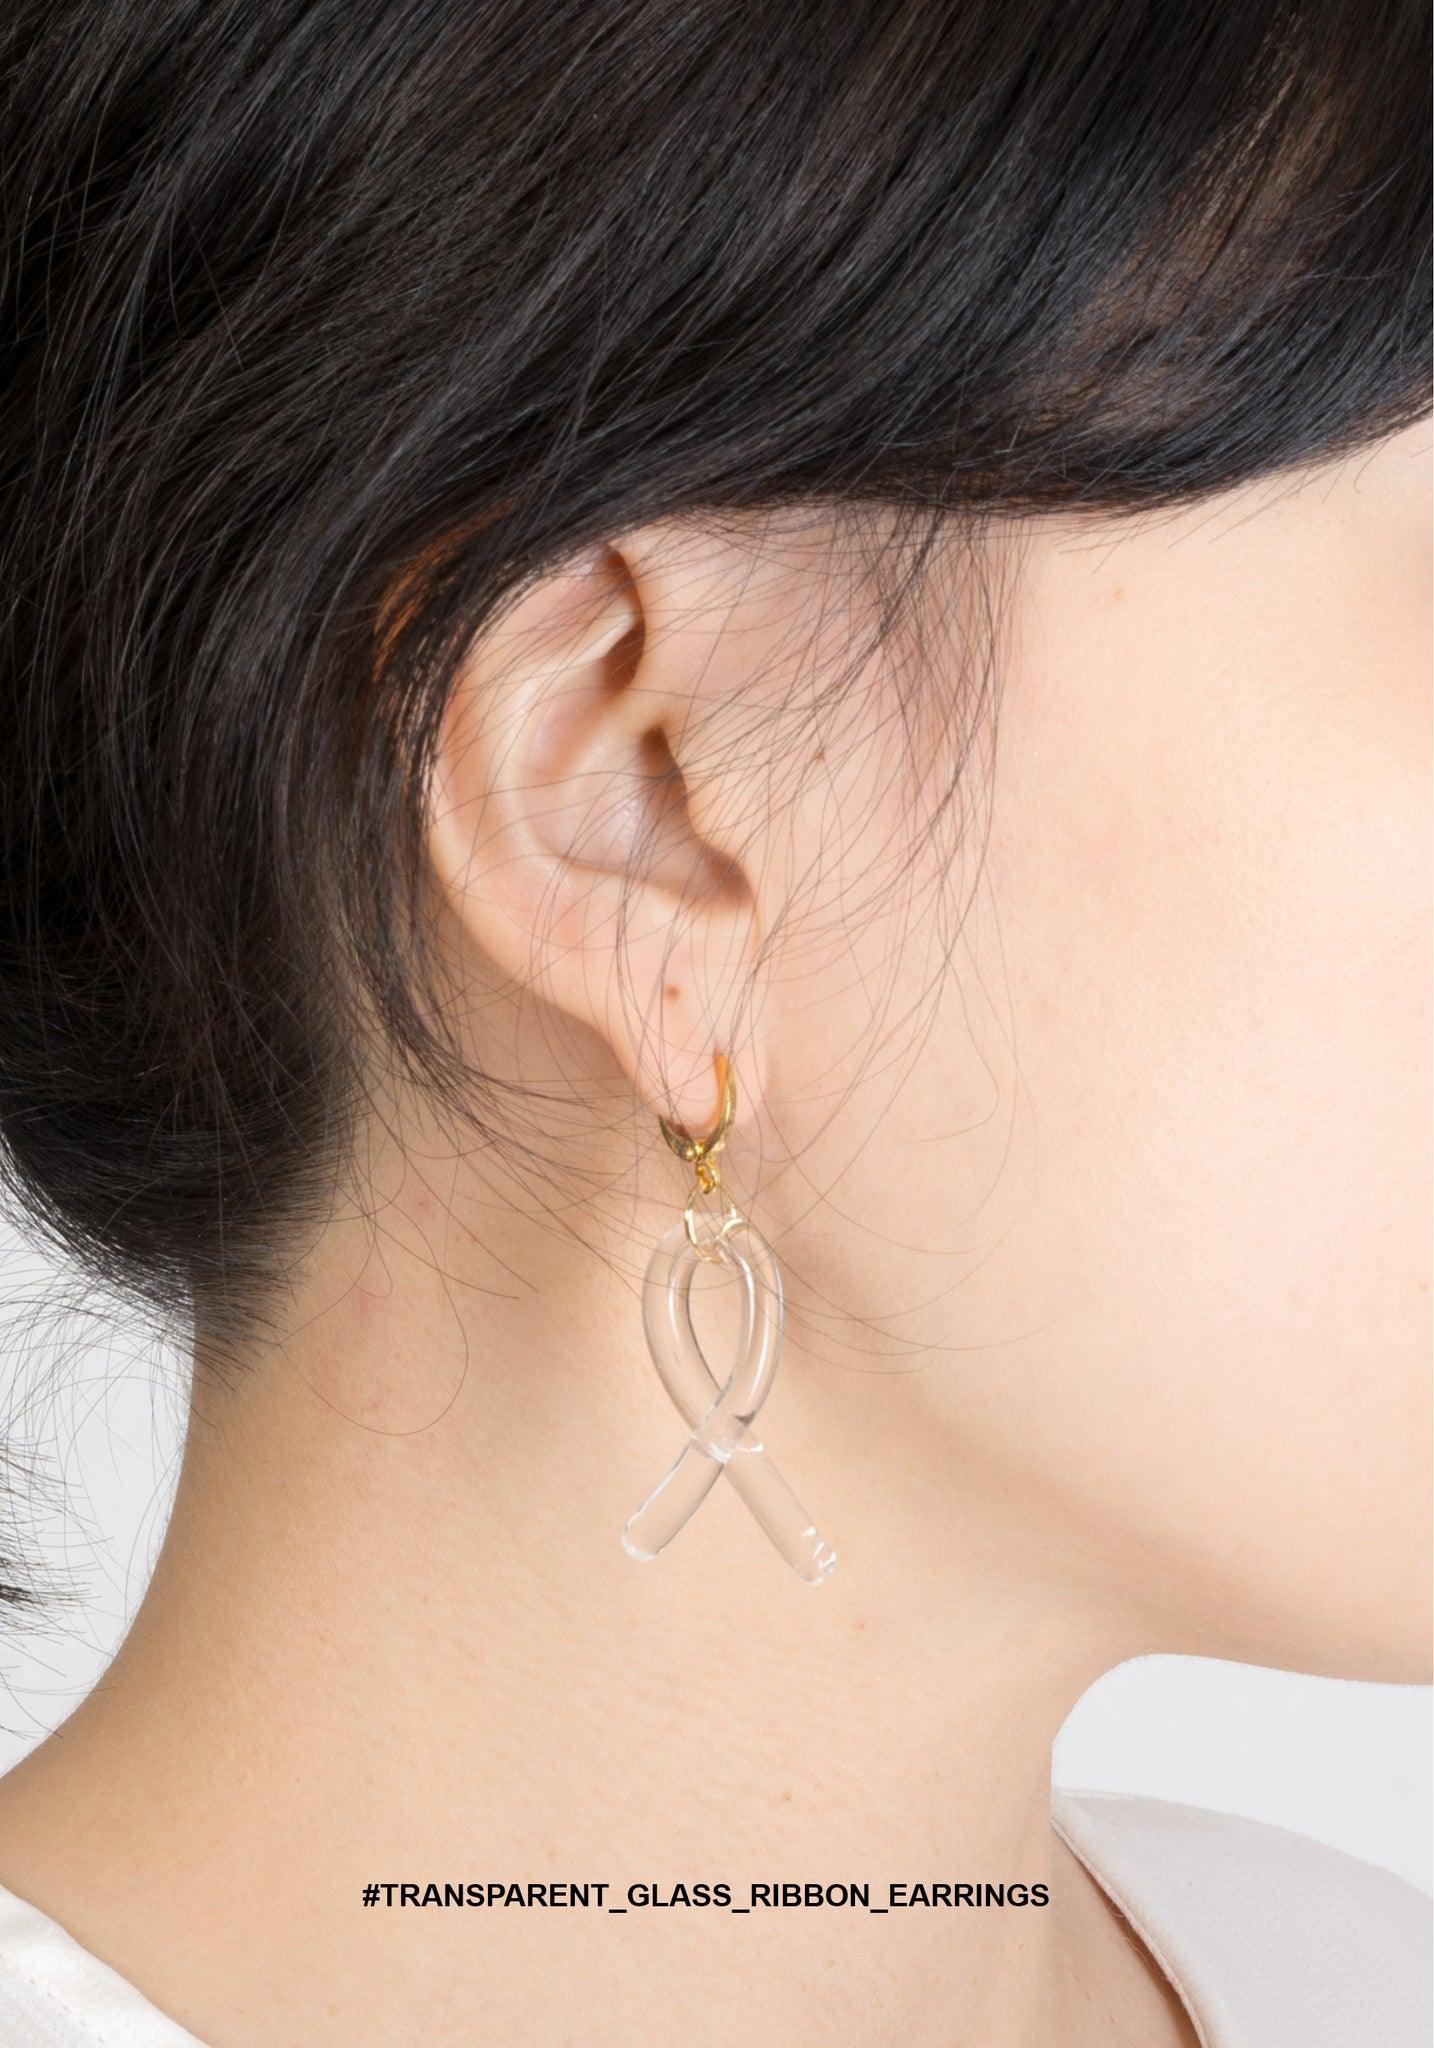 Transparent Glass Ribbon Earrings - whoami